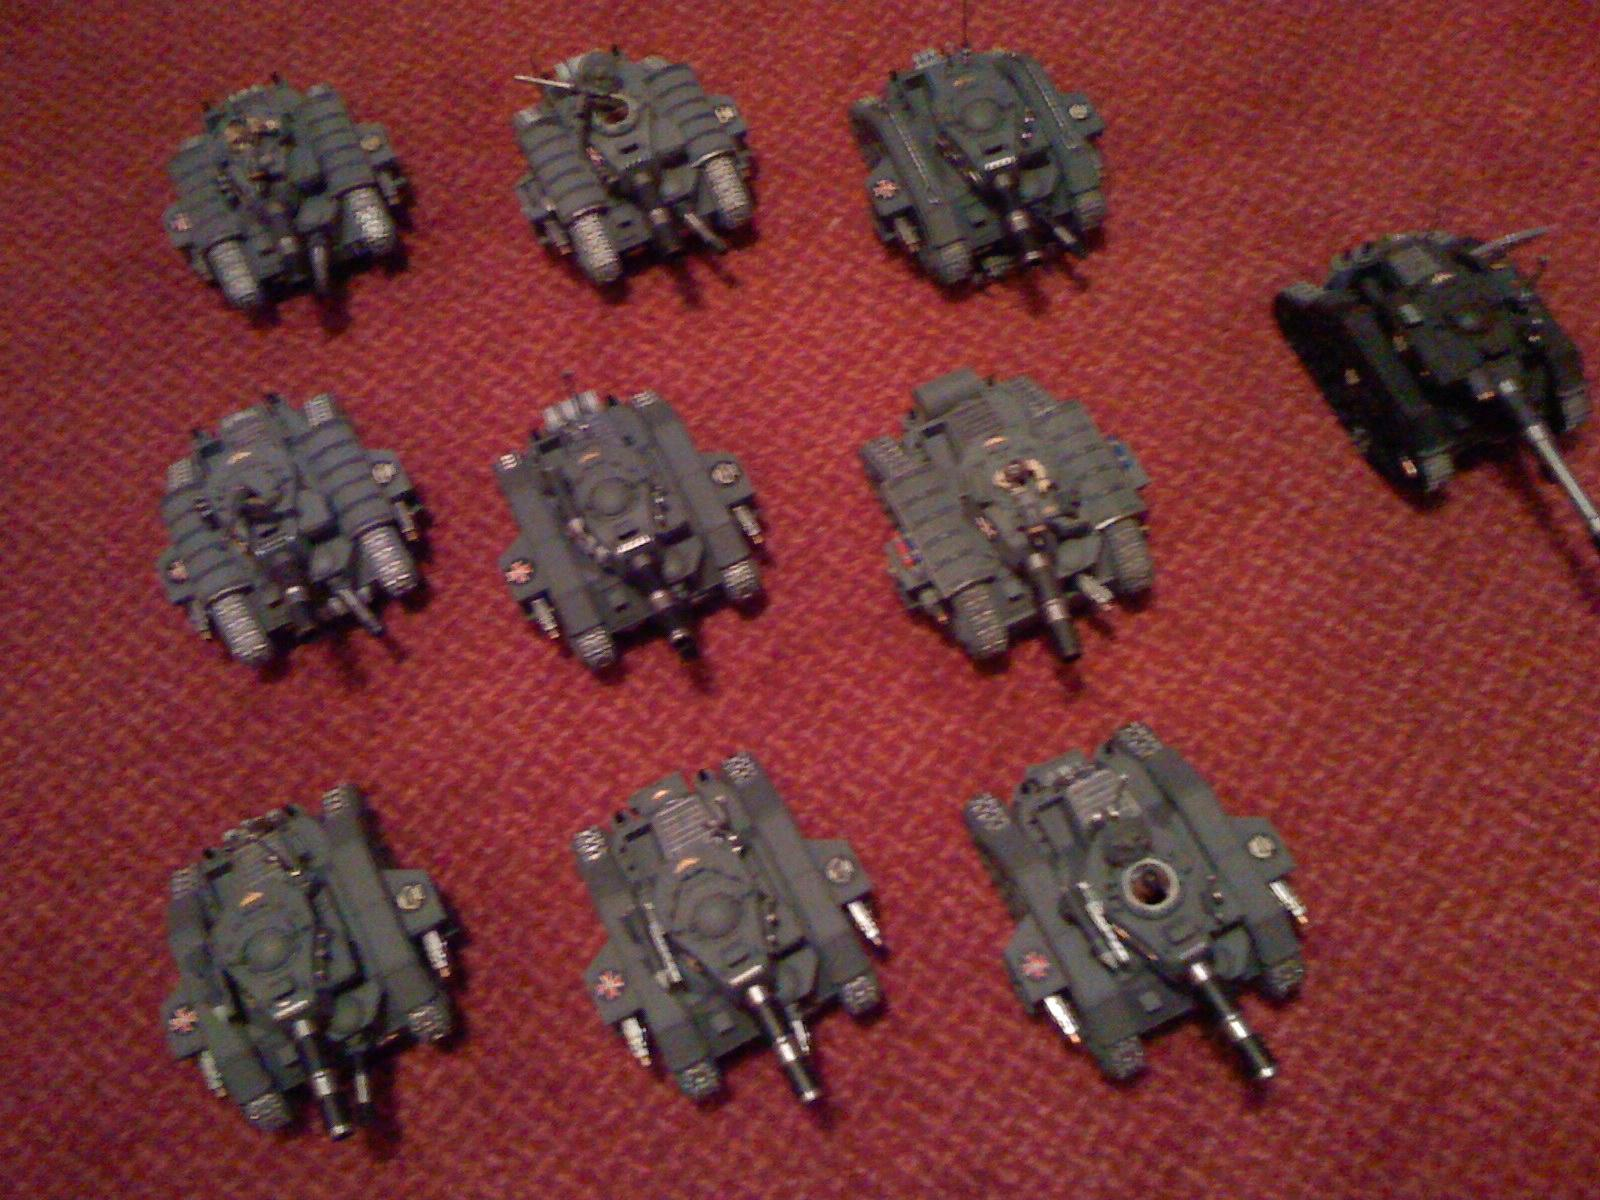 Armored Company, Battle Company, Imperial Guard, Warhammer 40,000